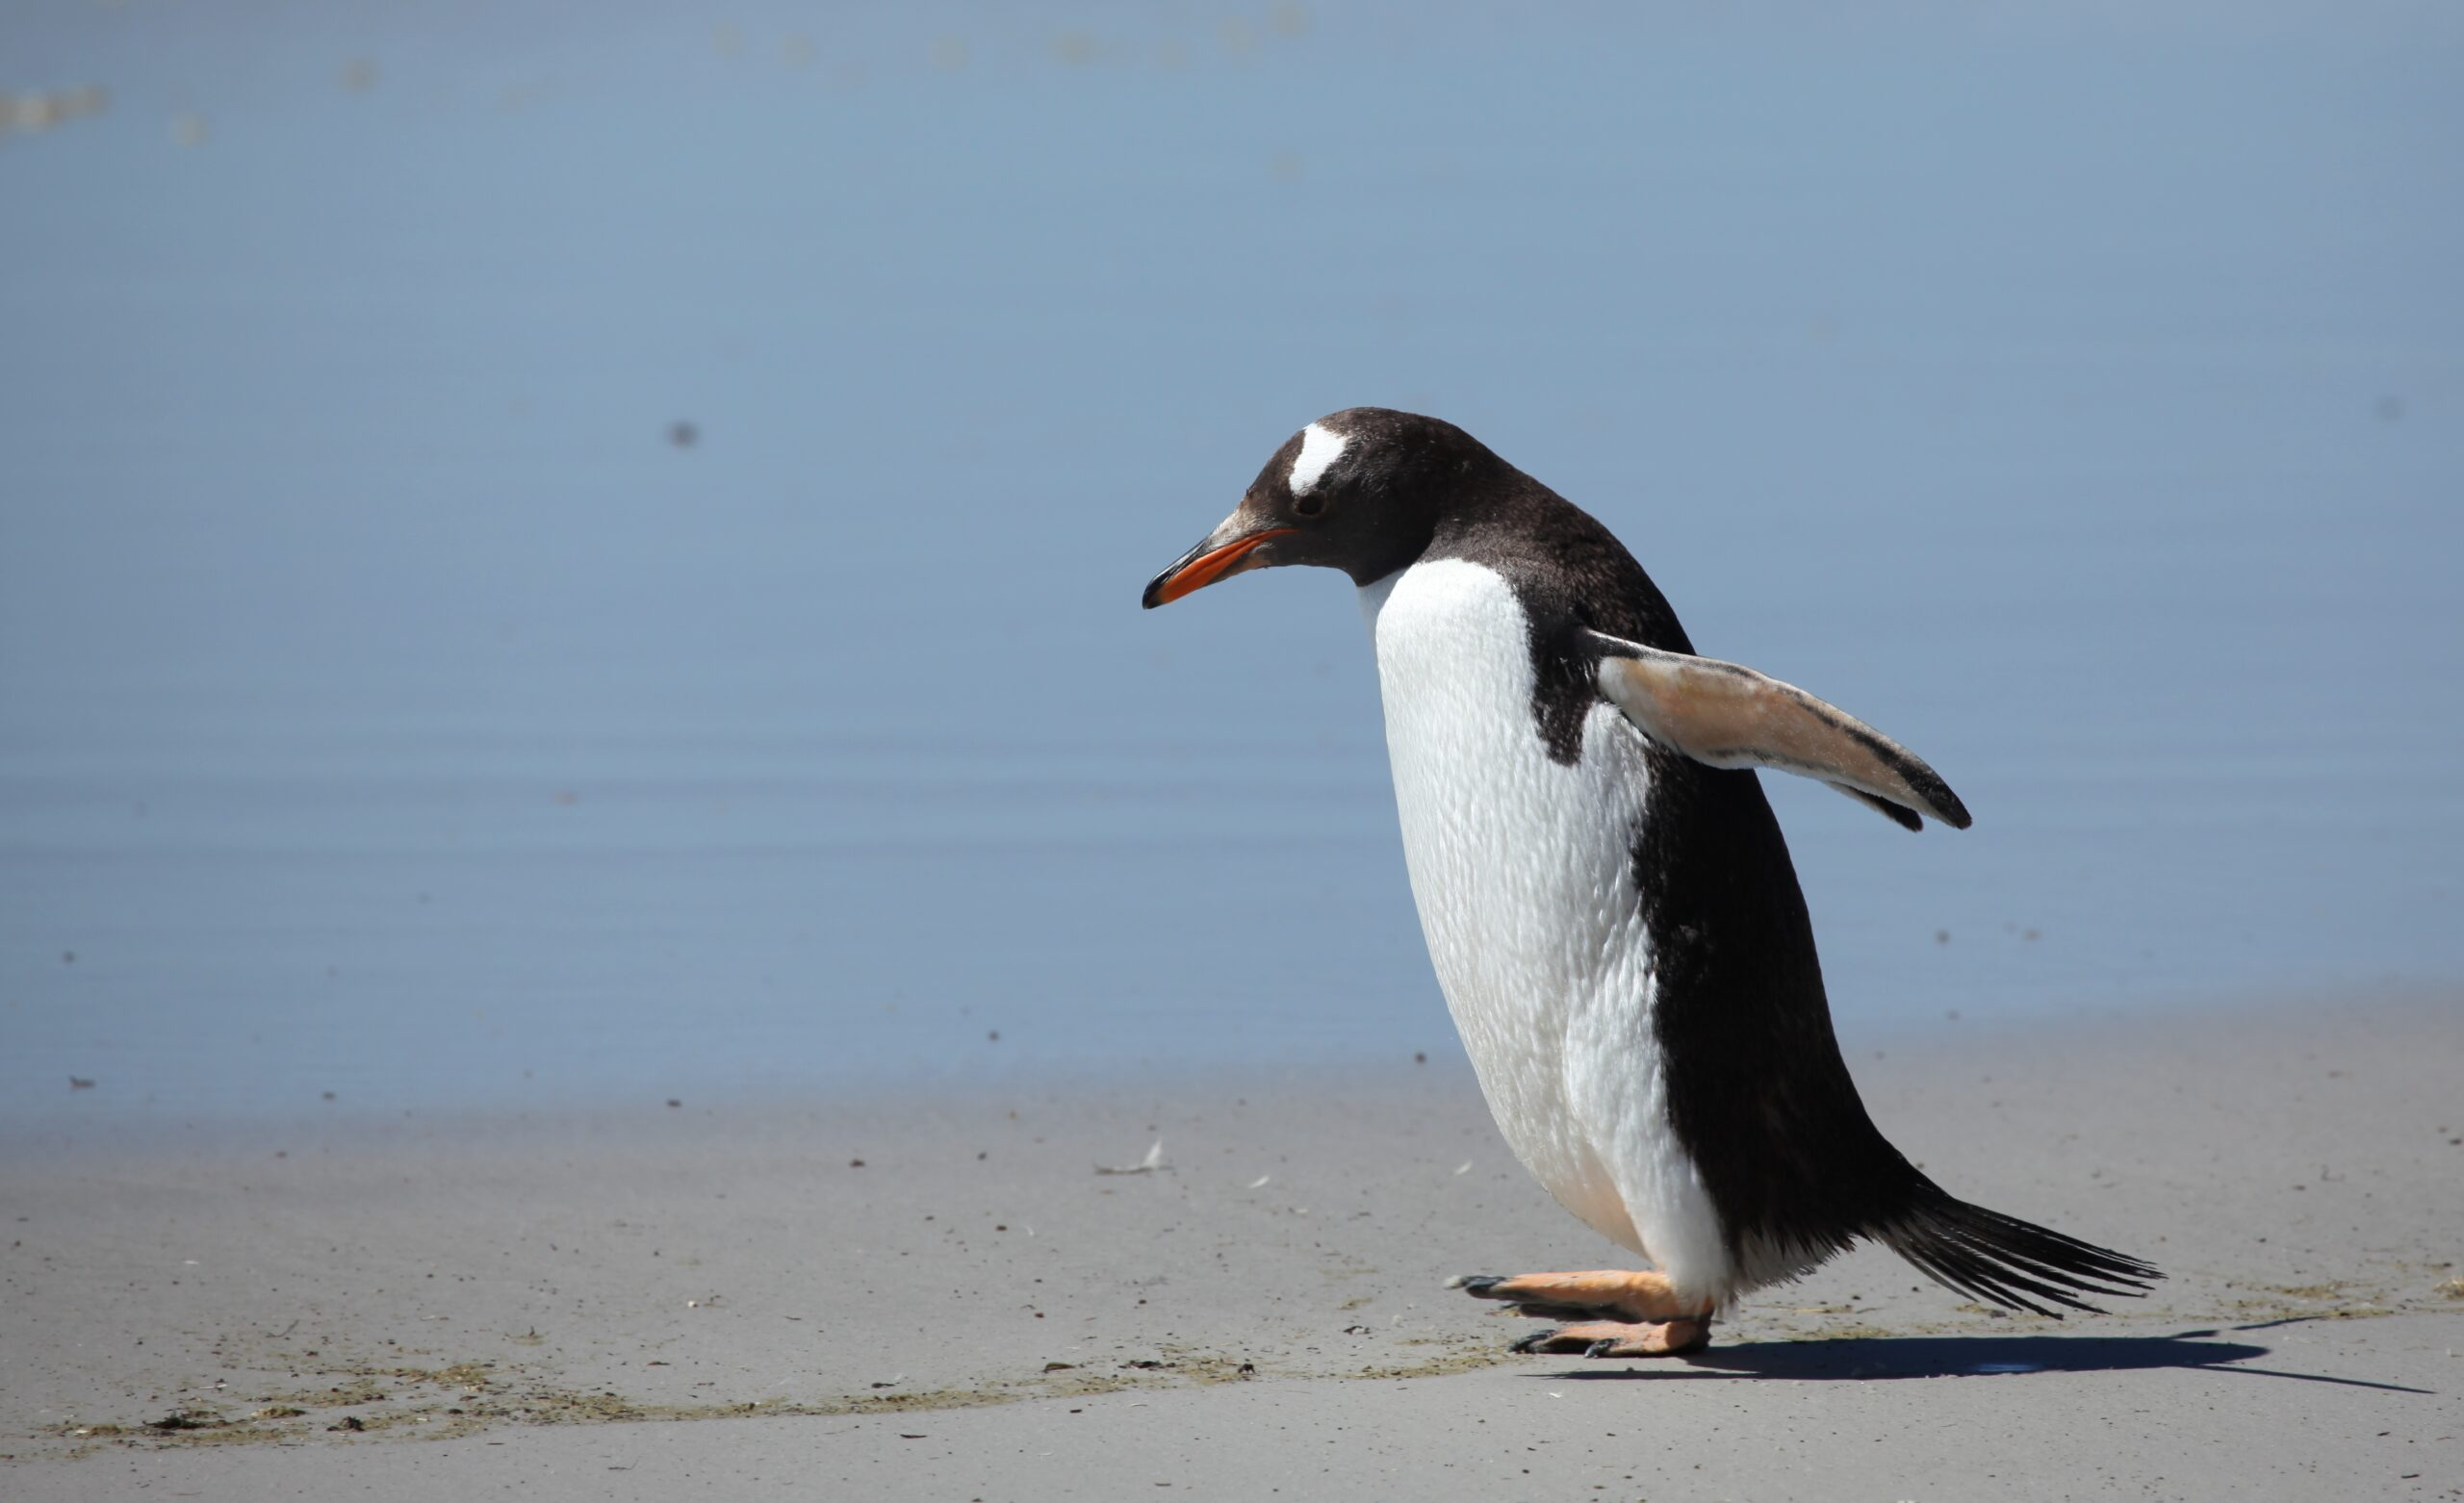 Warming up to the neighborhood: a gentoo penguin's new digs